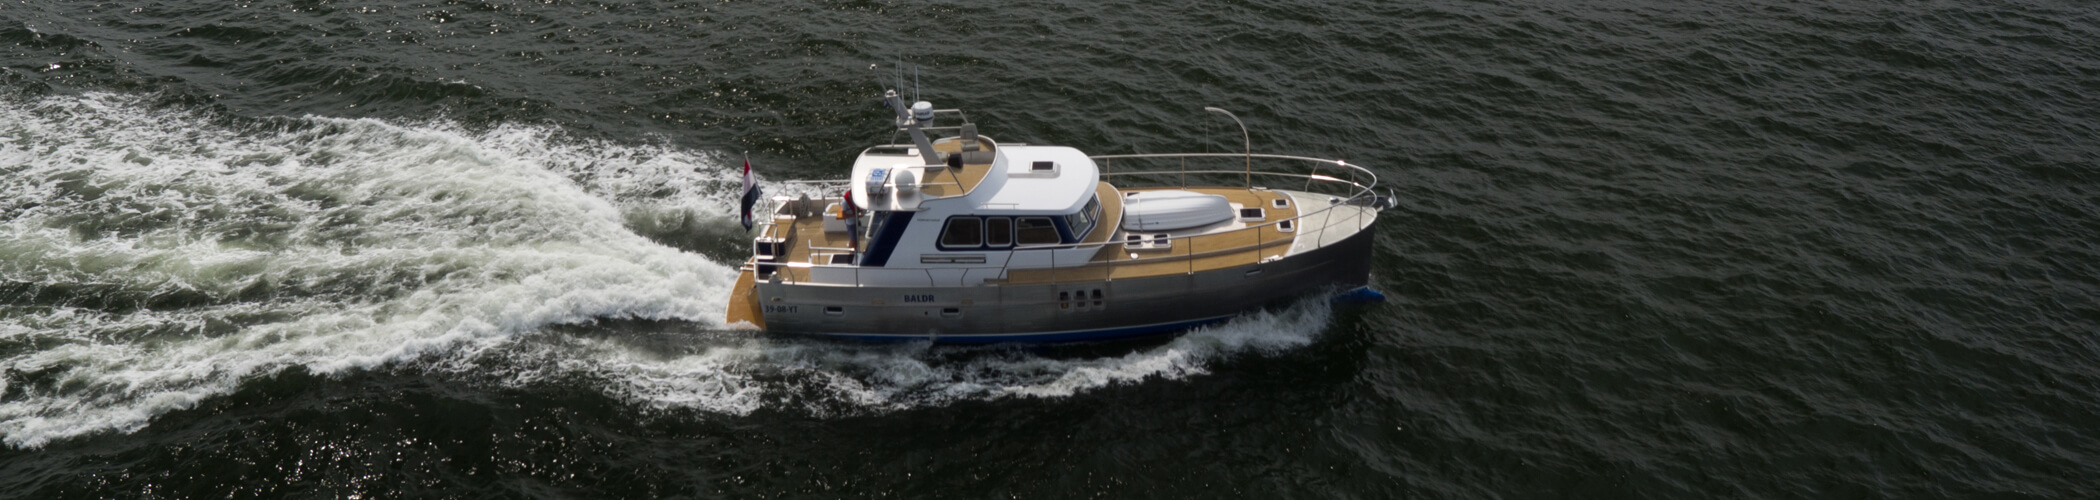 Korvet14CLR aluminium motor boat underway on the North sea